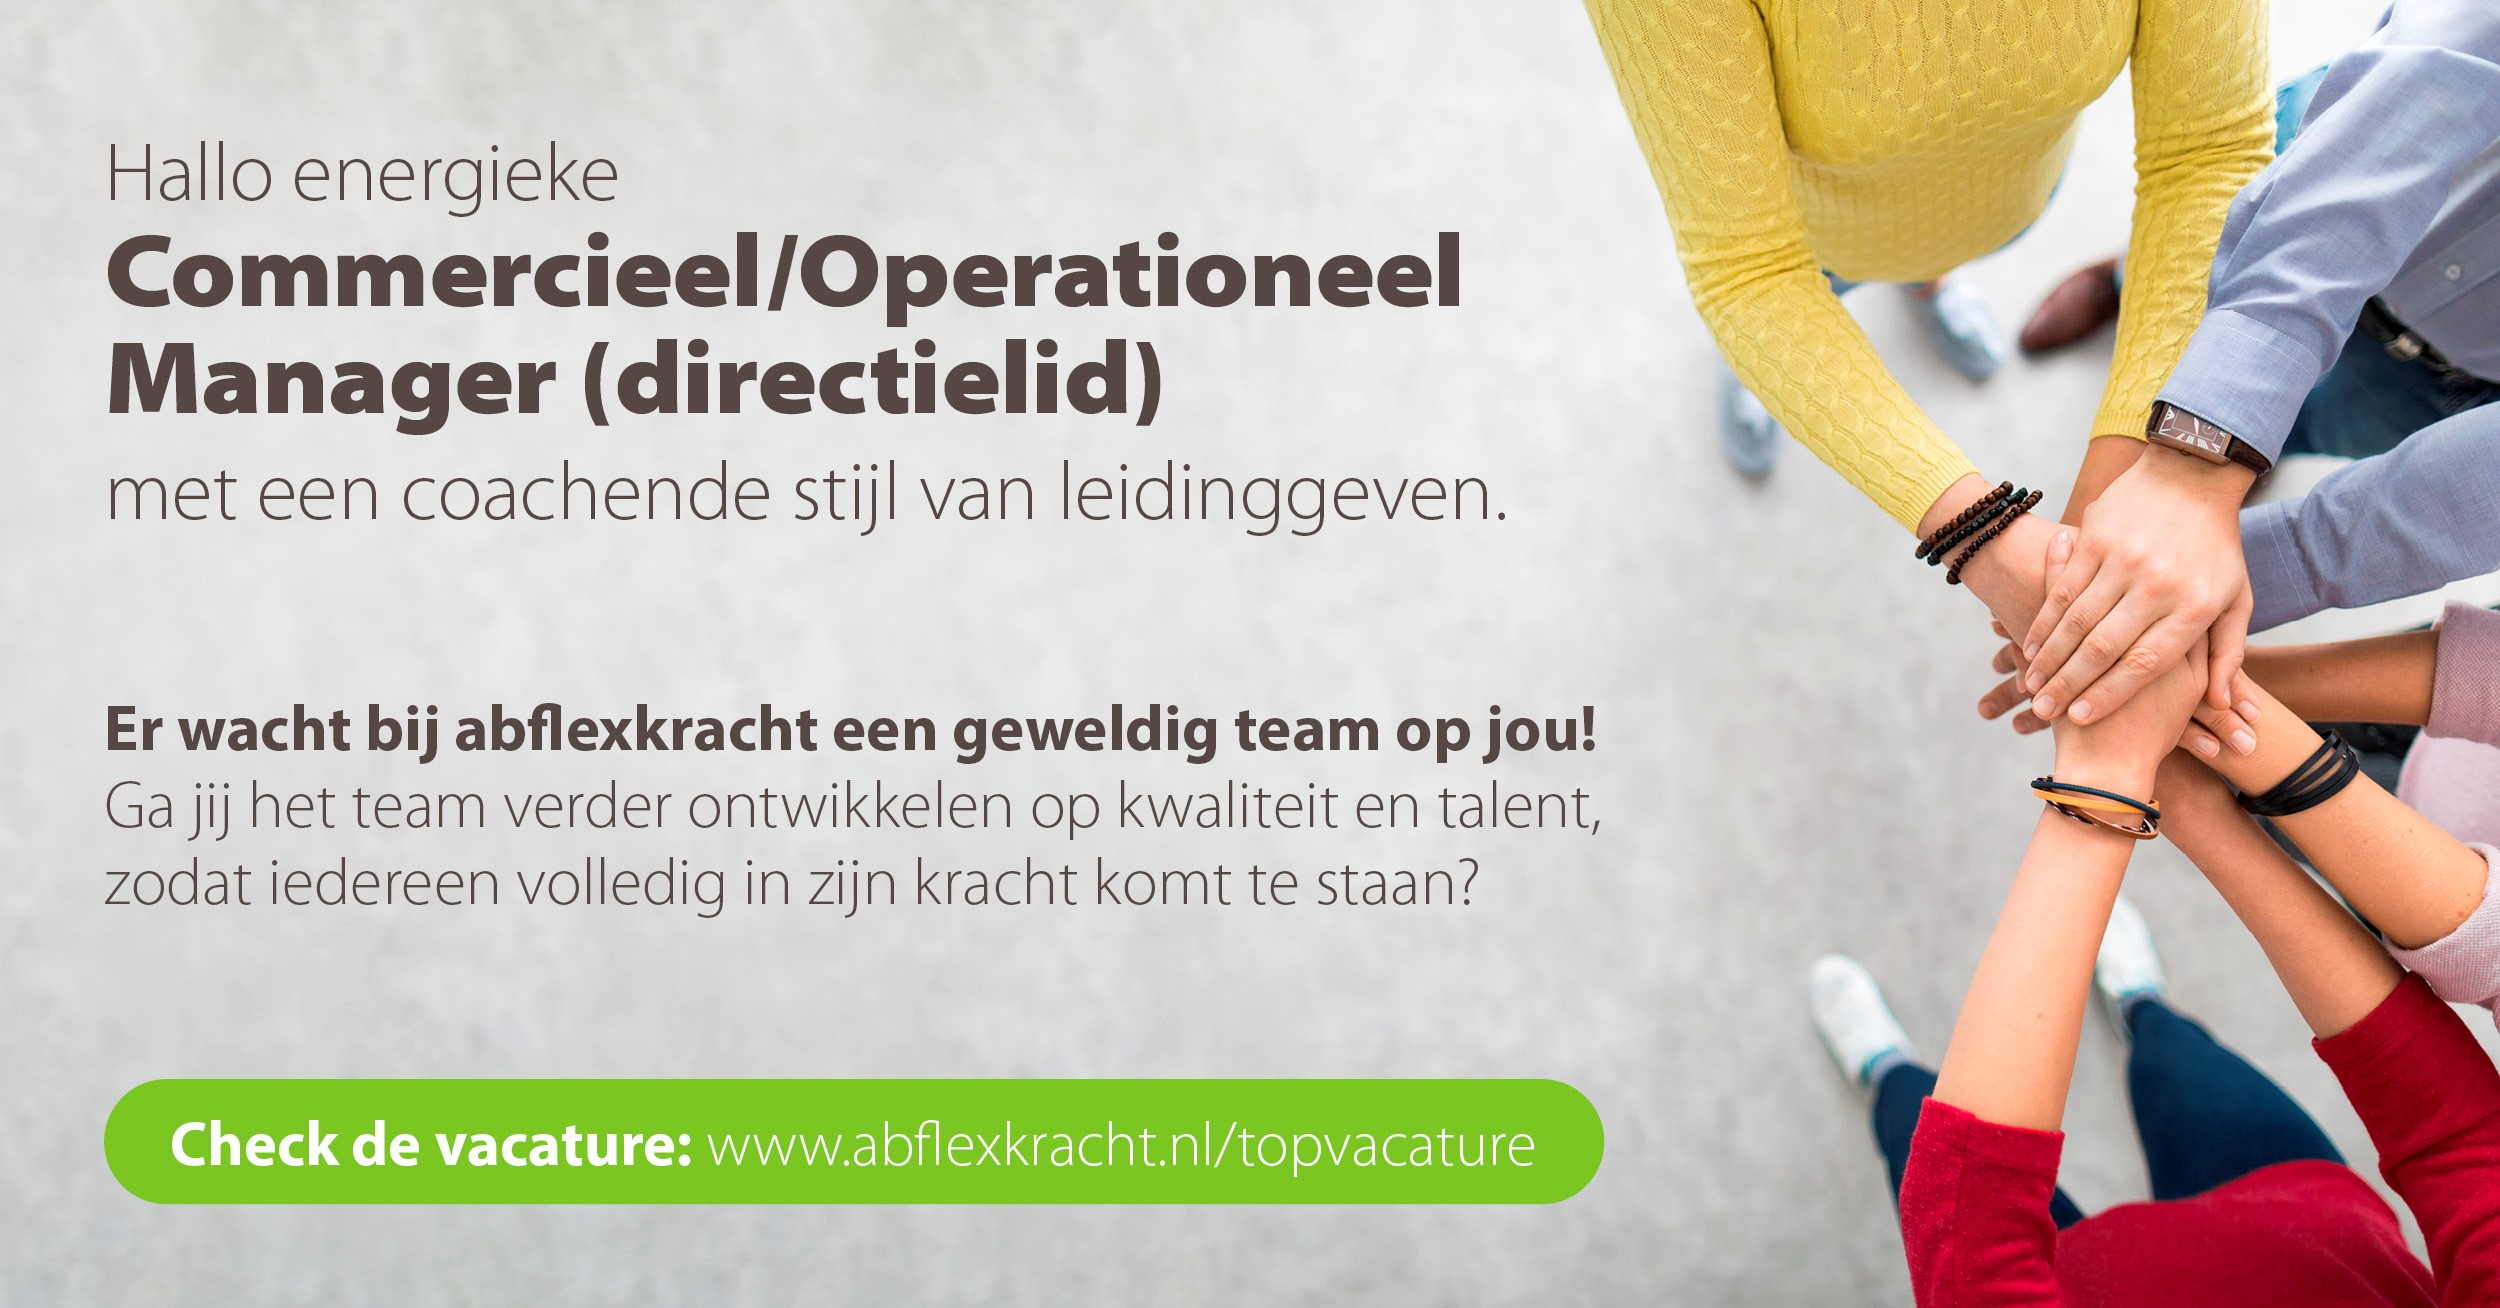 Vacature abflexkracht - Commercieel/Operationeel Manager